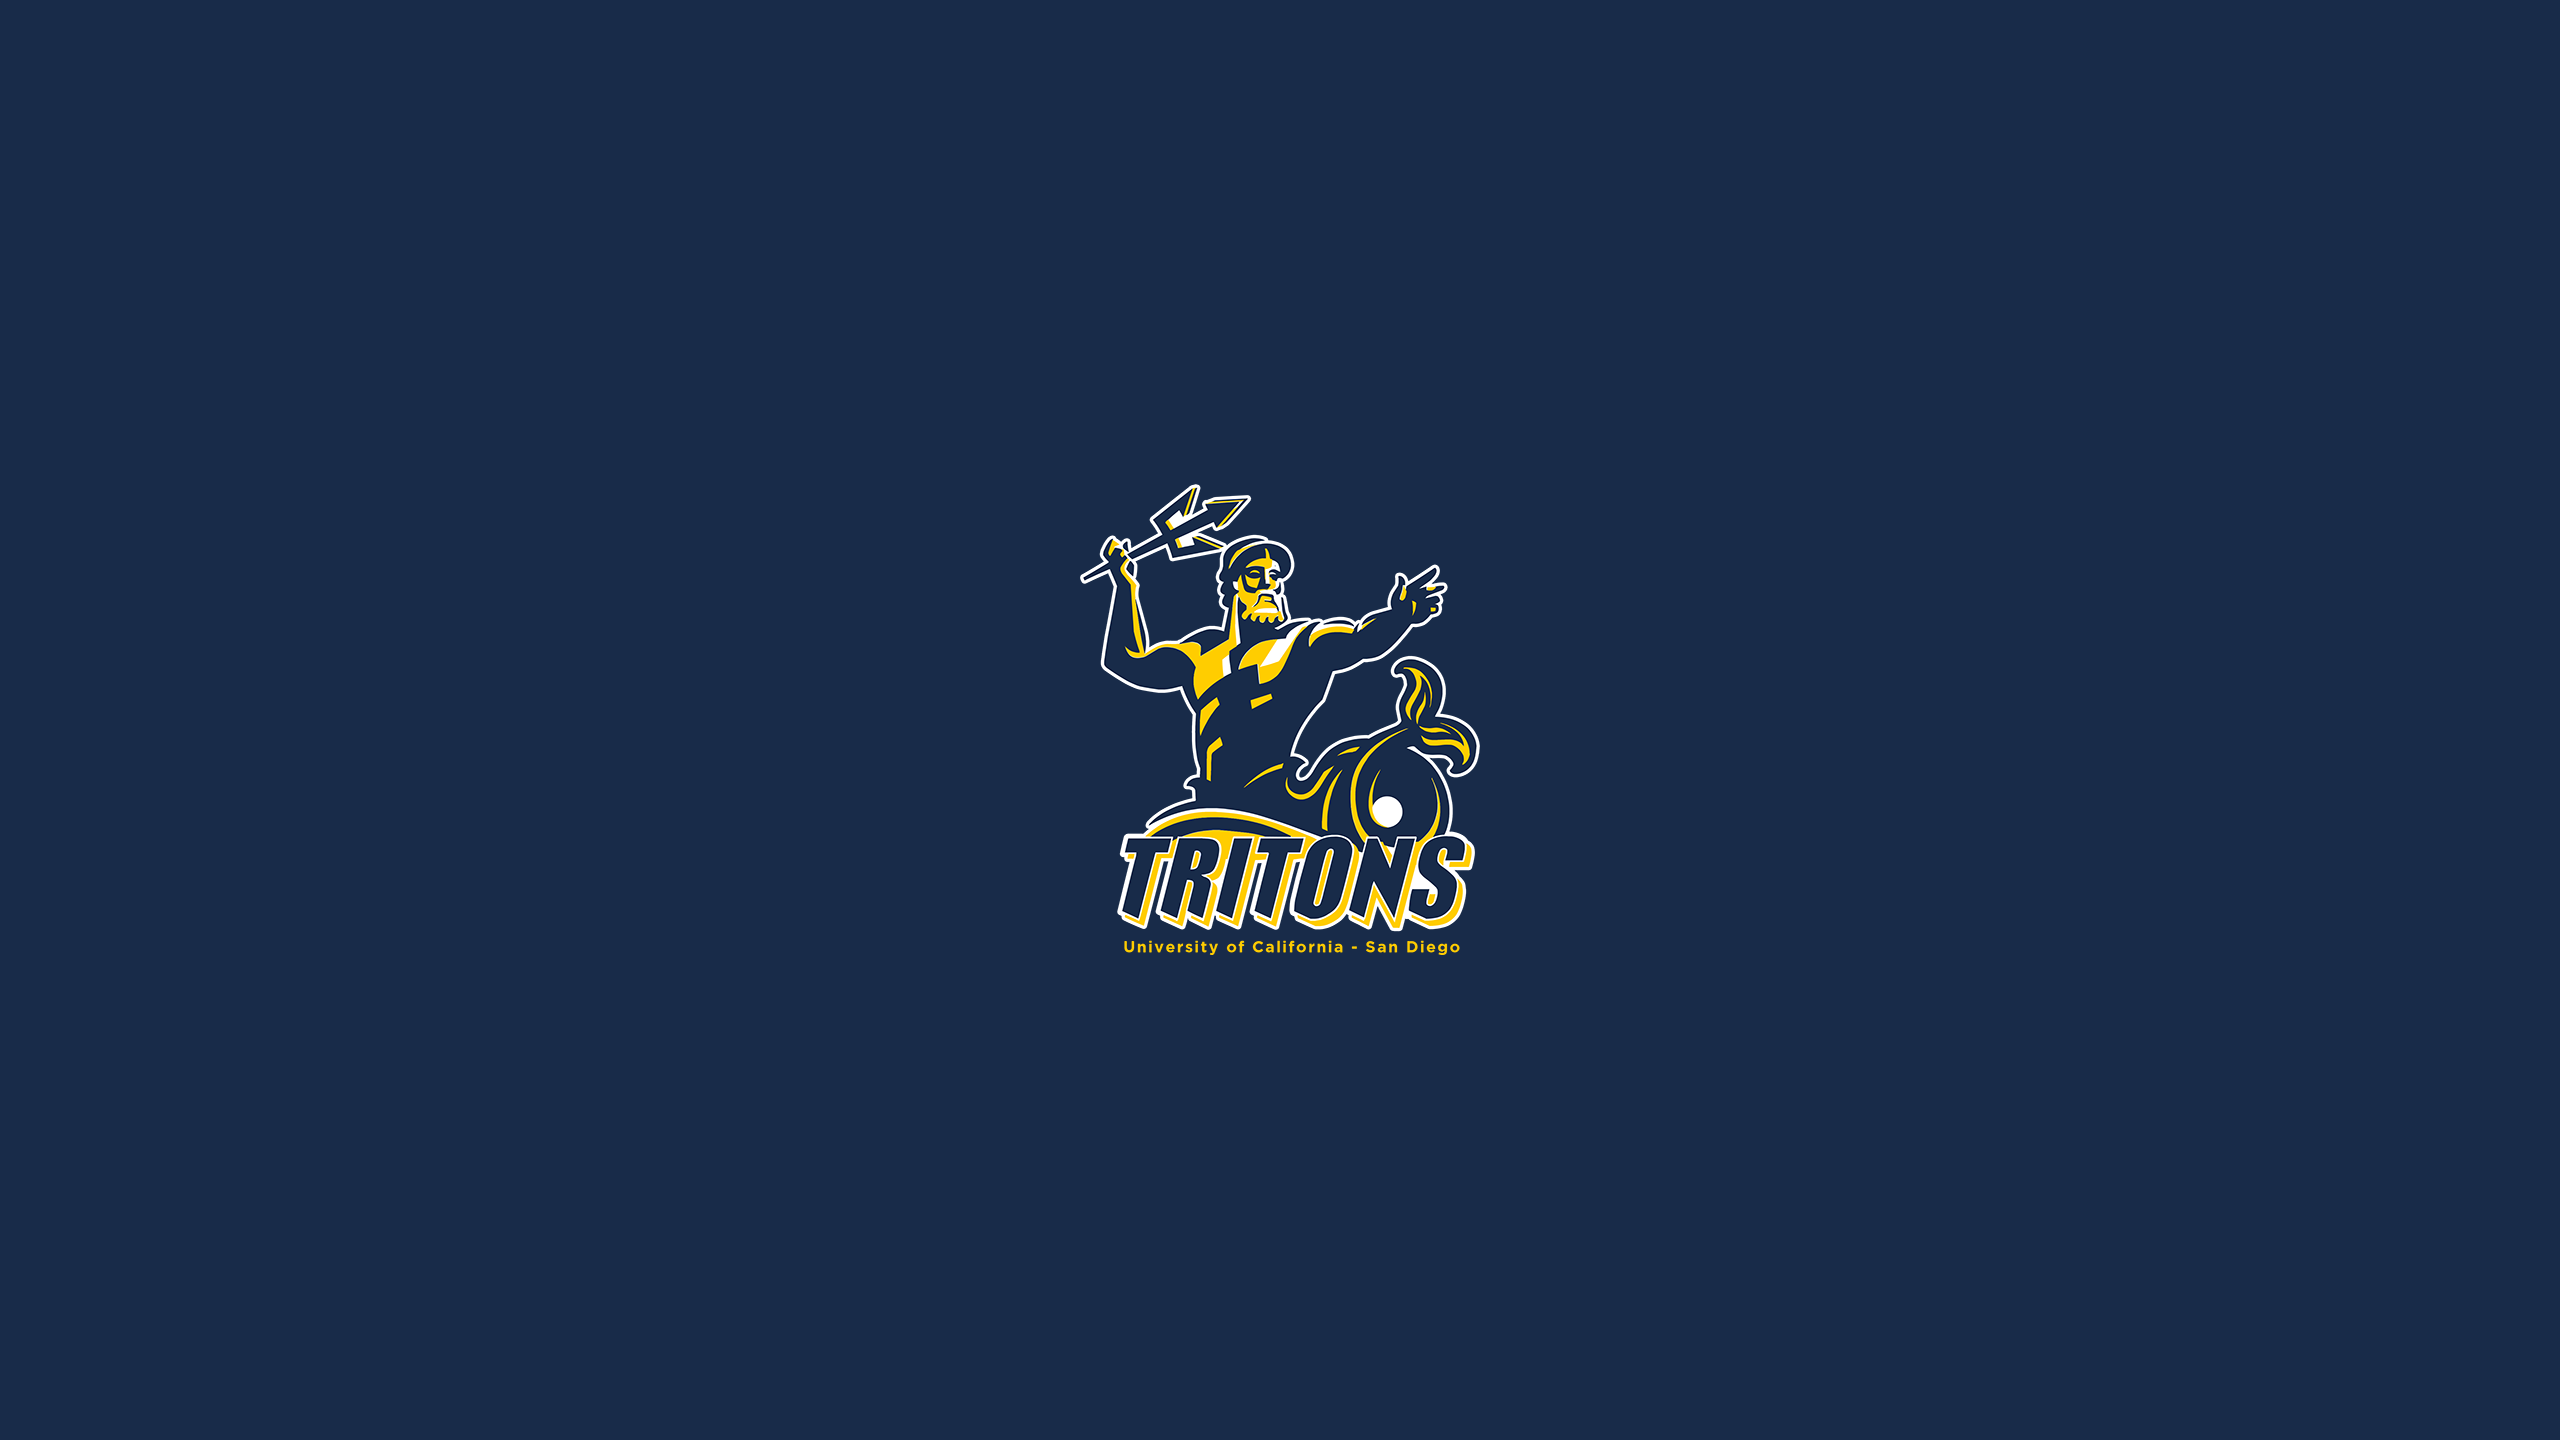 University of California San Diego Tritons